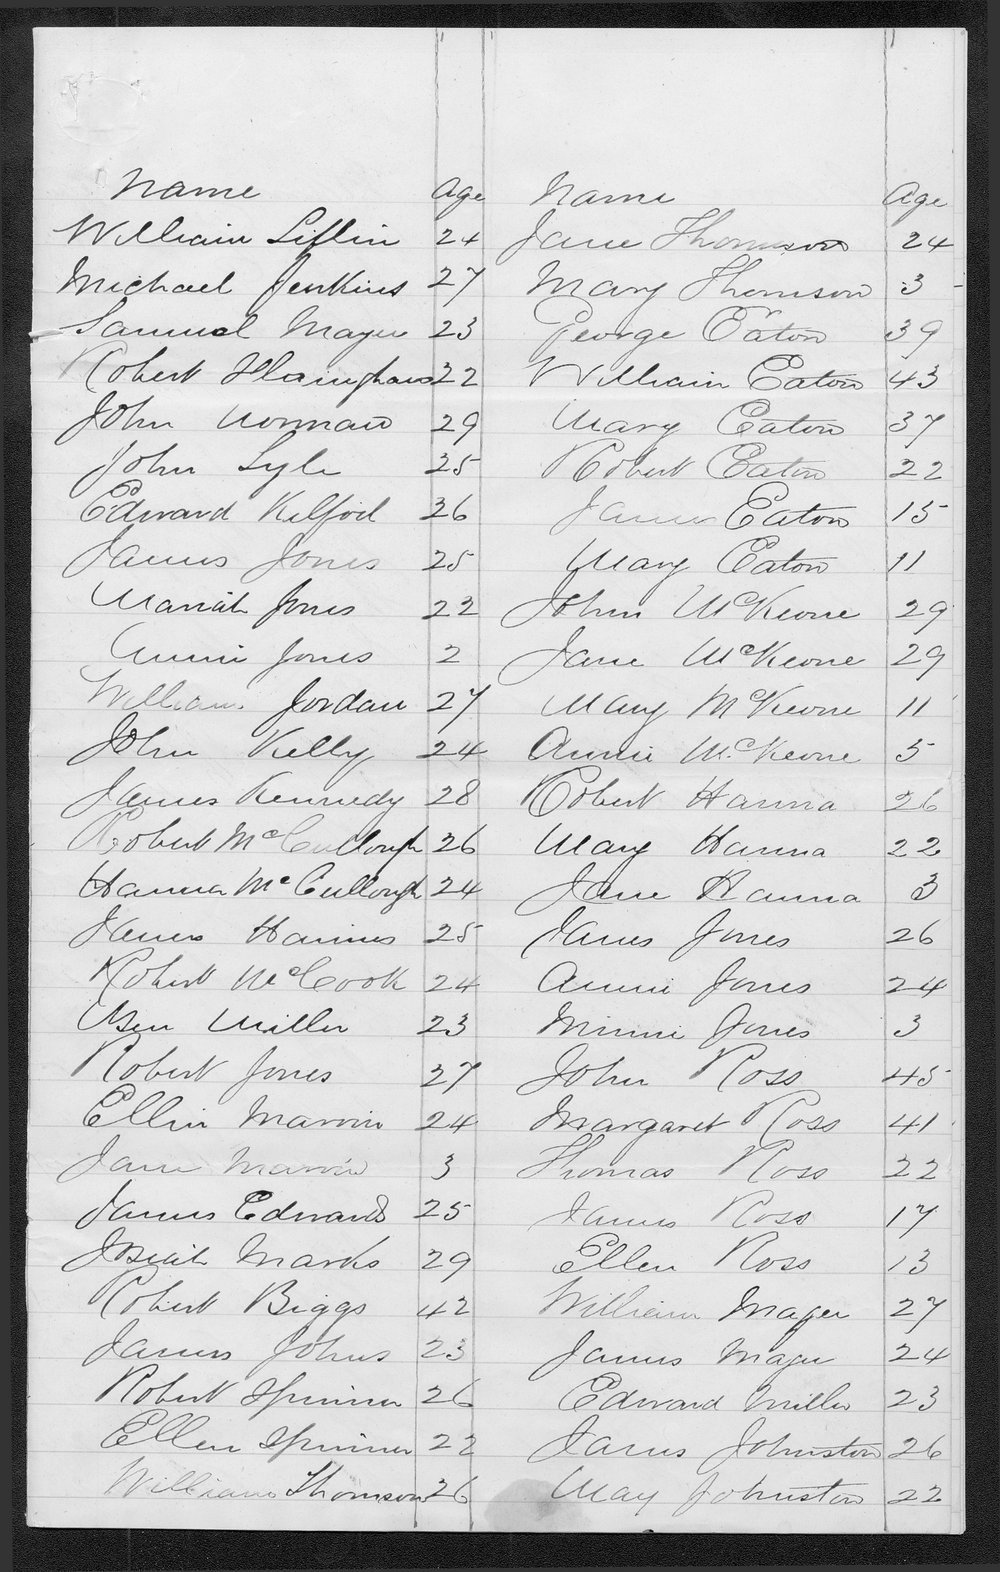 Ness County organization records - 7